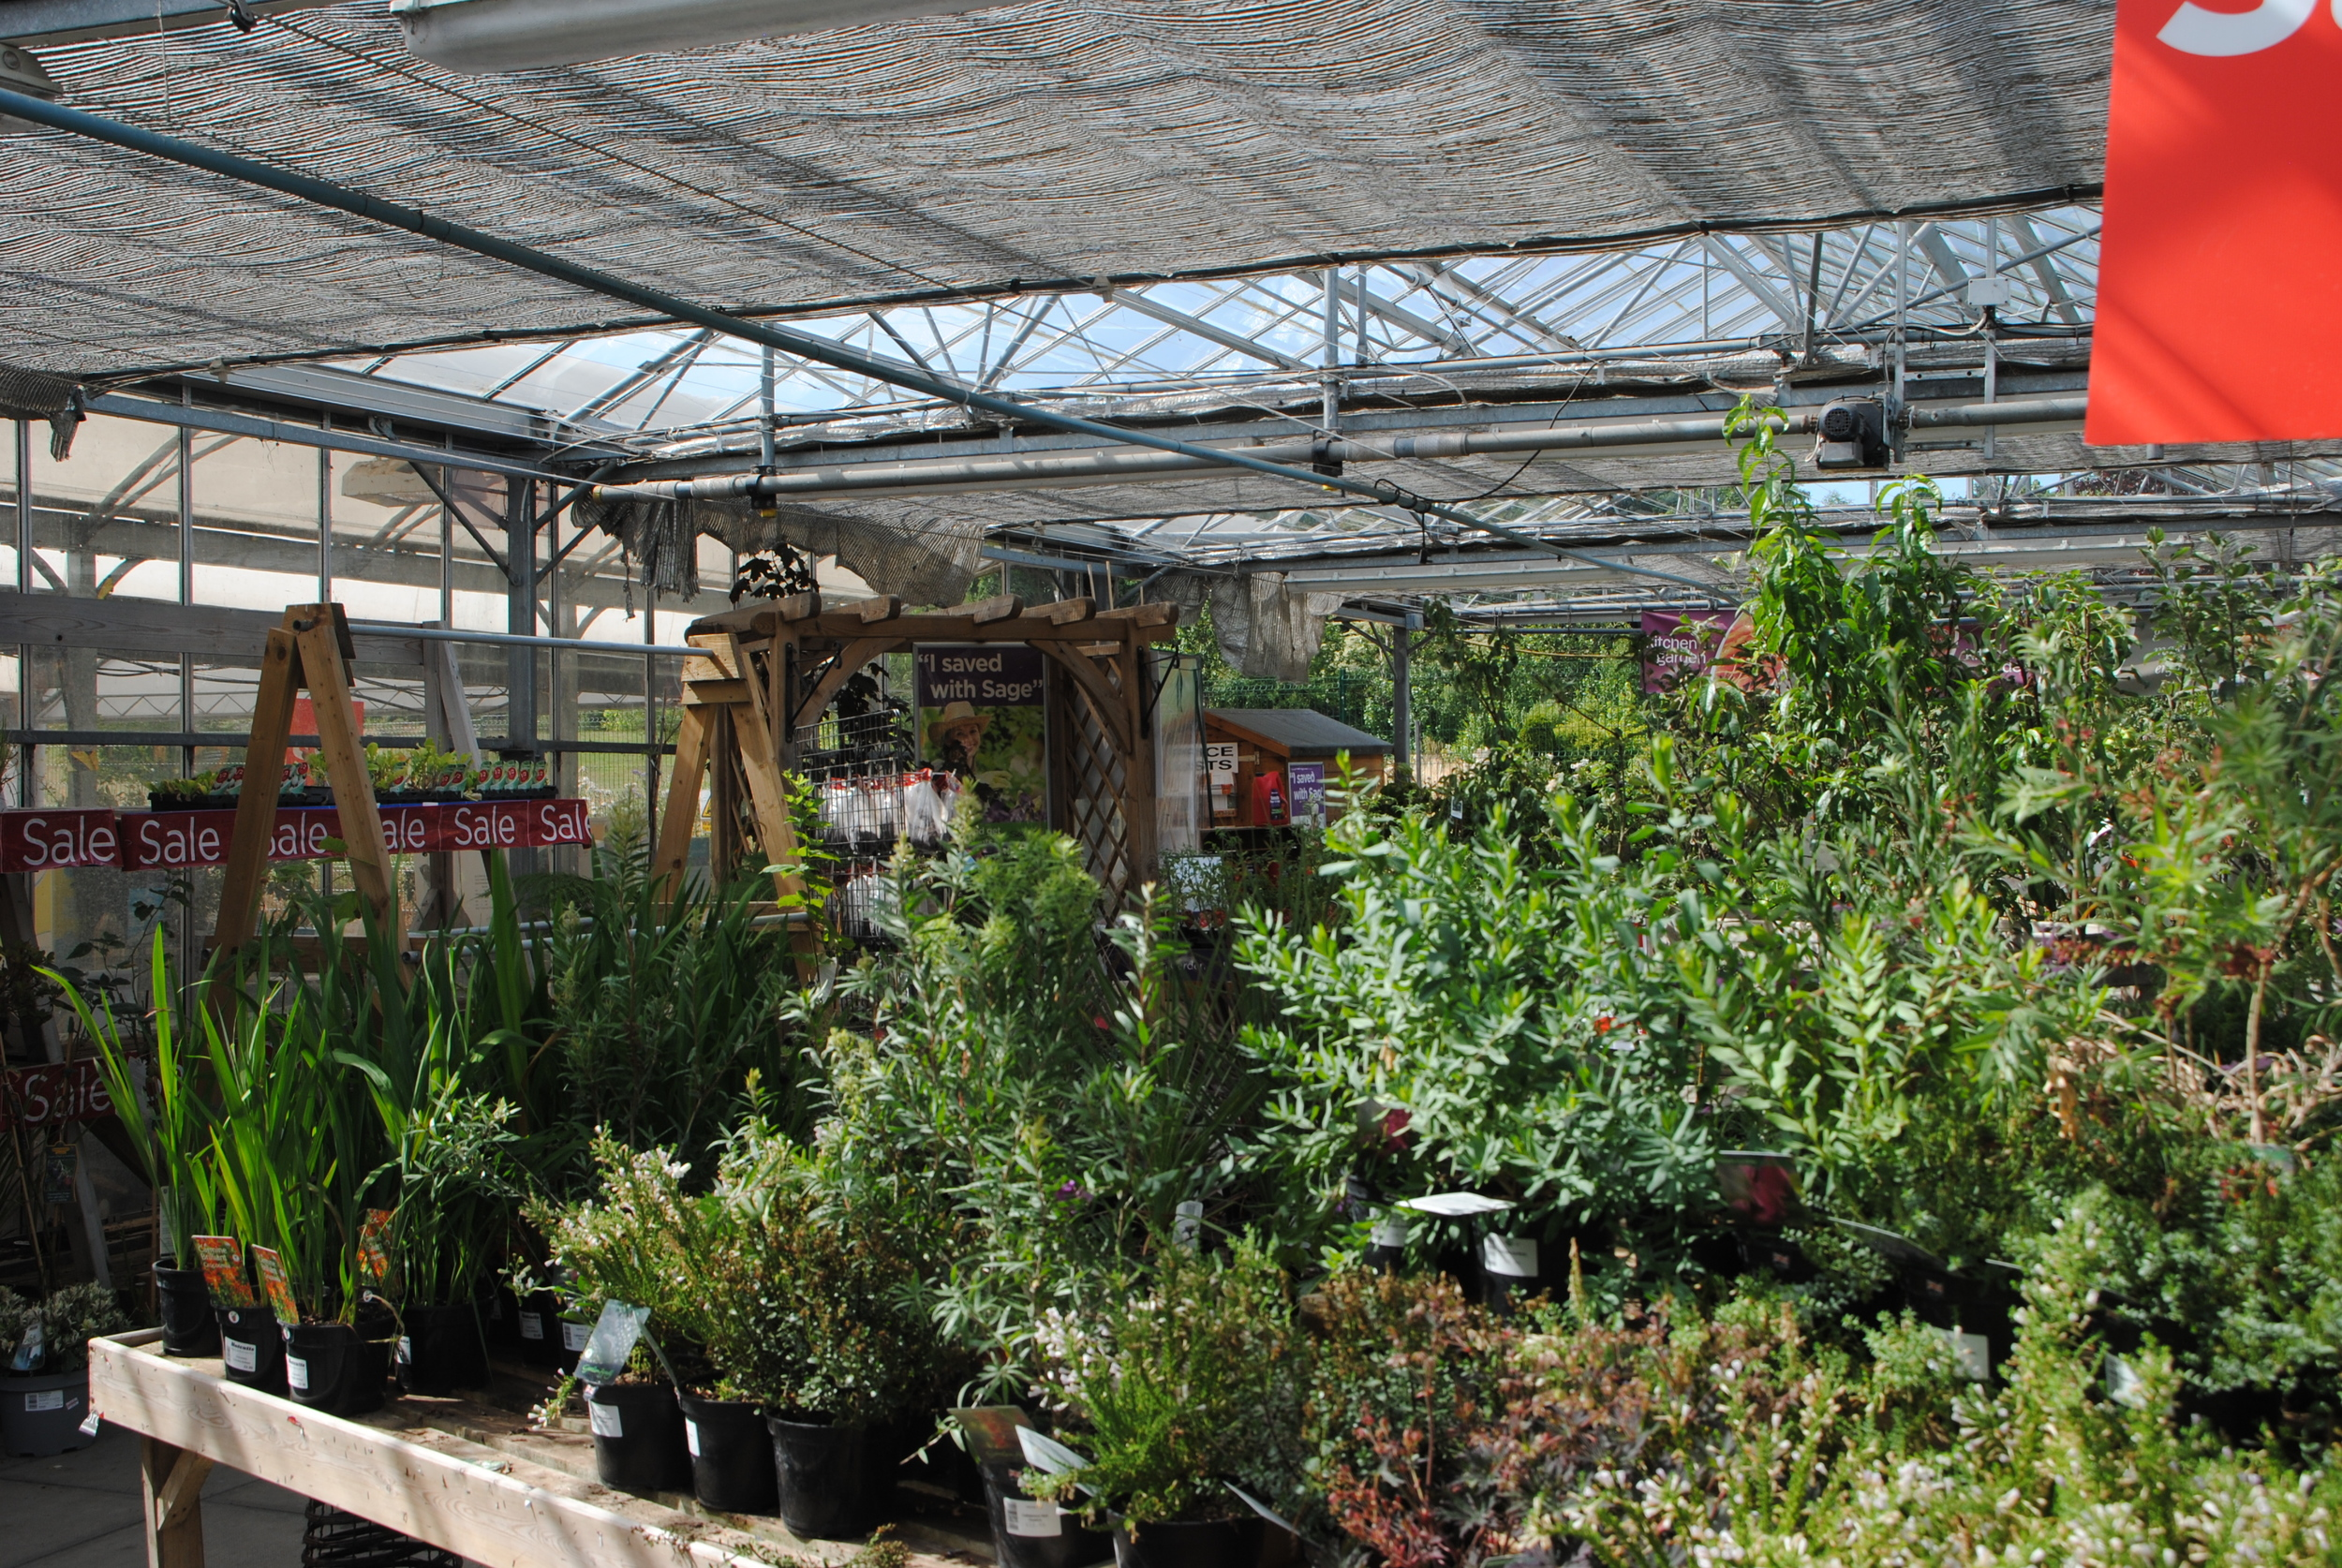 Notcutt's Nursery has a great selection of plants and garden accessories.